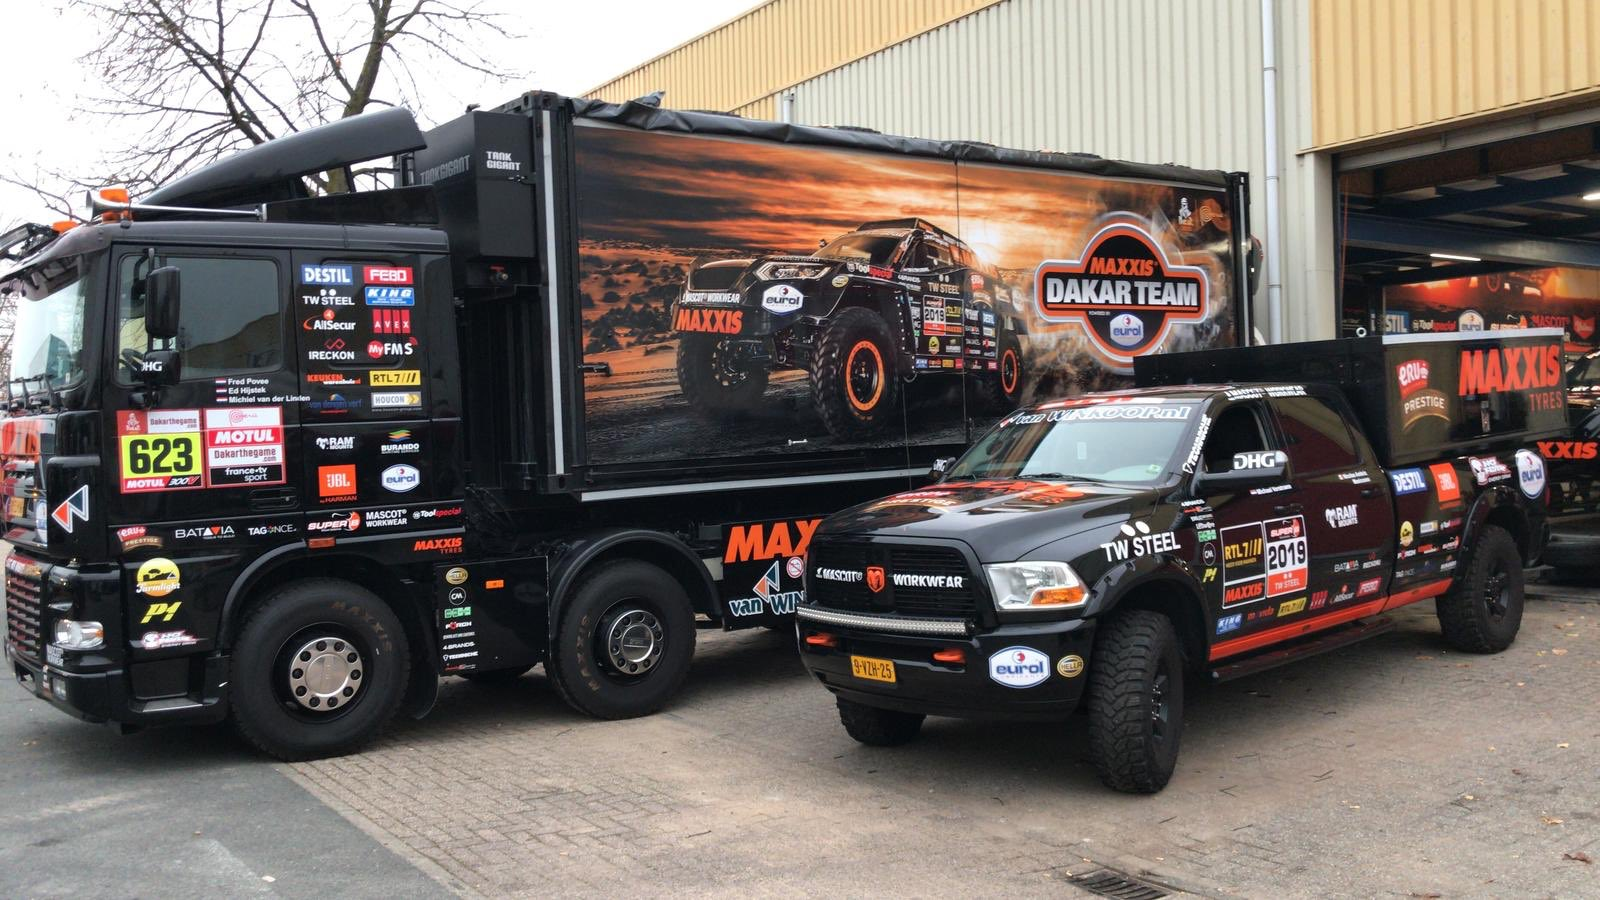 Tom Coronel On Twitter Our Dakar2019 Support Truck Beast347 Newbeetleorgexploded Diagrams Part Numbers Gooood Stuff And Presscar Are Route To Lehavre For A Long Boat Trip Peru Yes